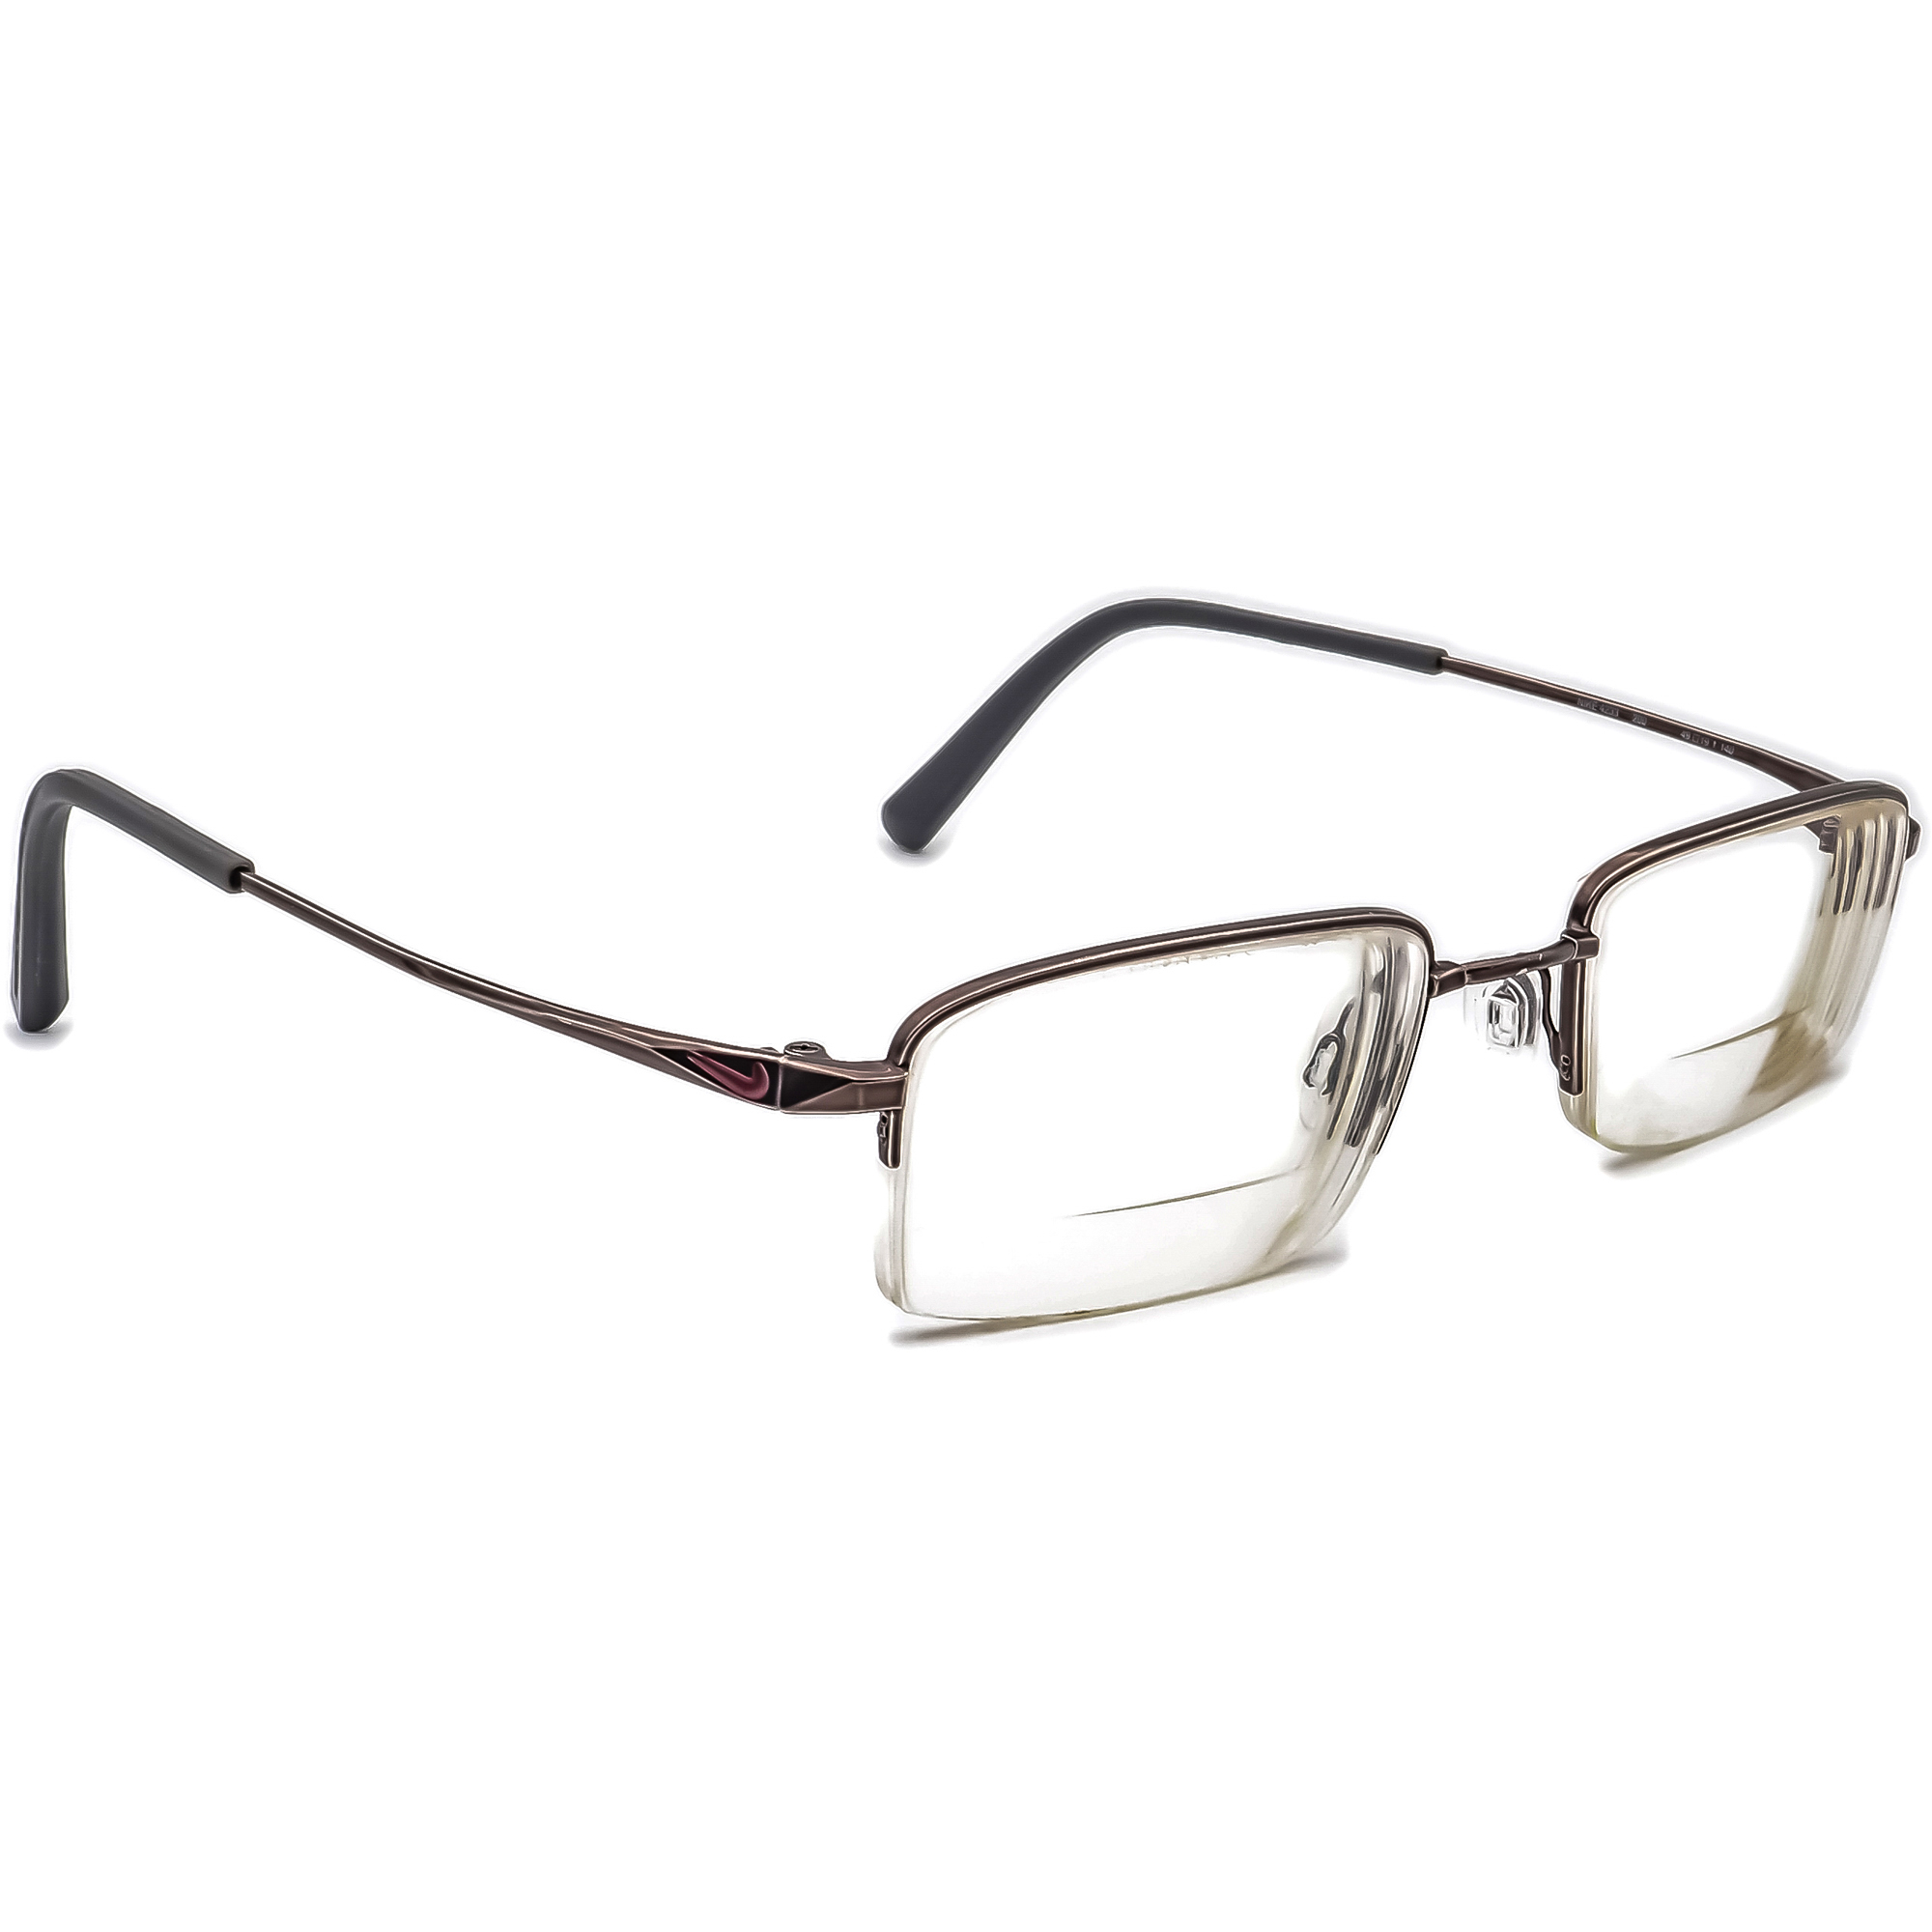 Nike 4233 200 Flexon Bridge Eyeglasses